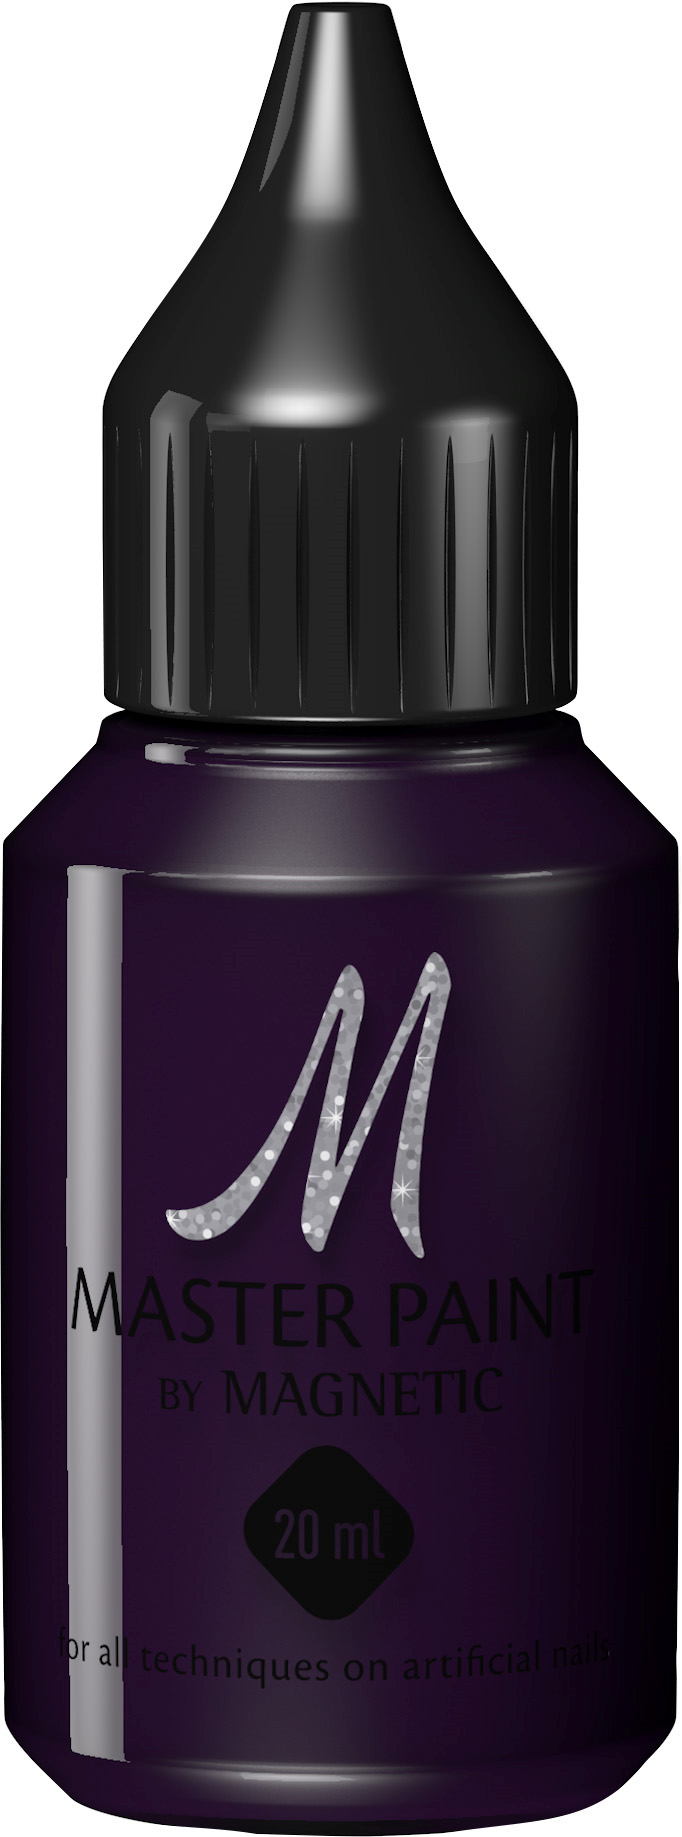 Naglar Master Paint Deep Purple - 20 ml